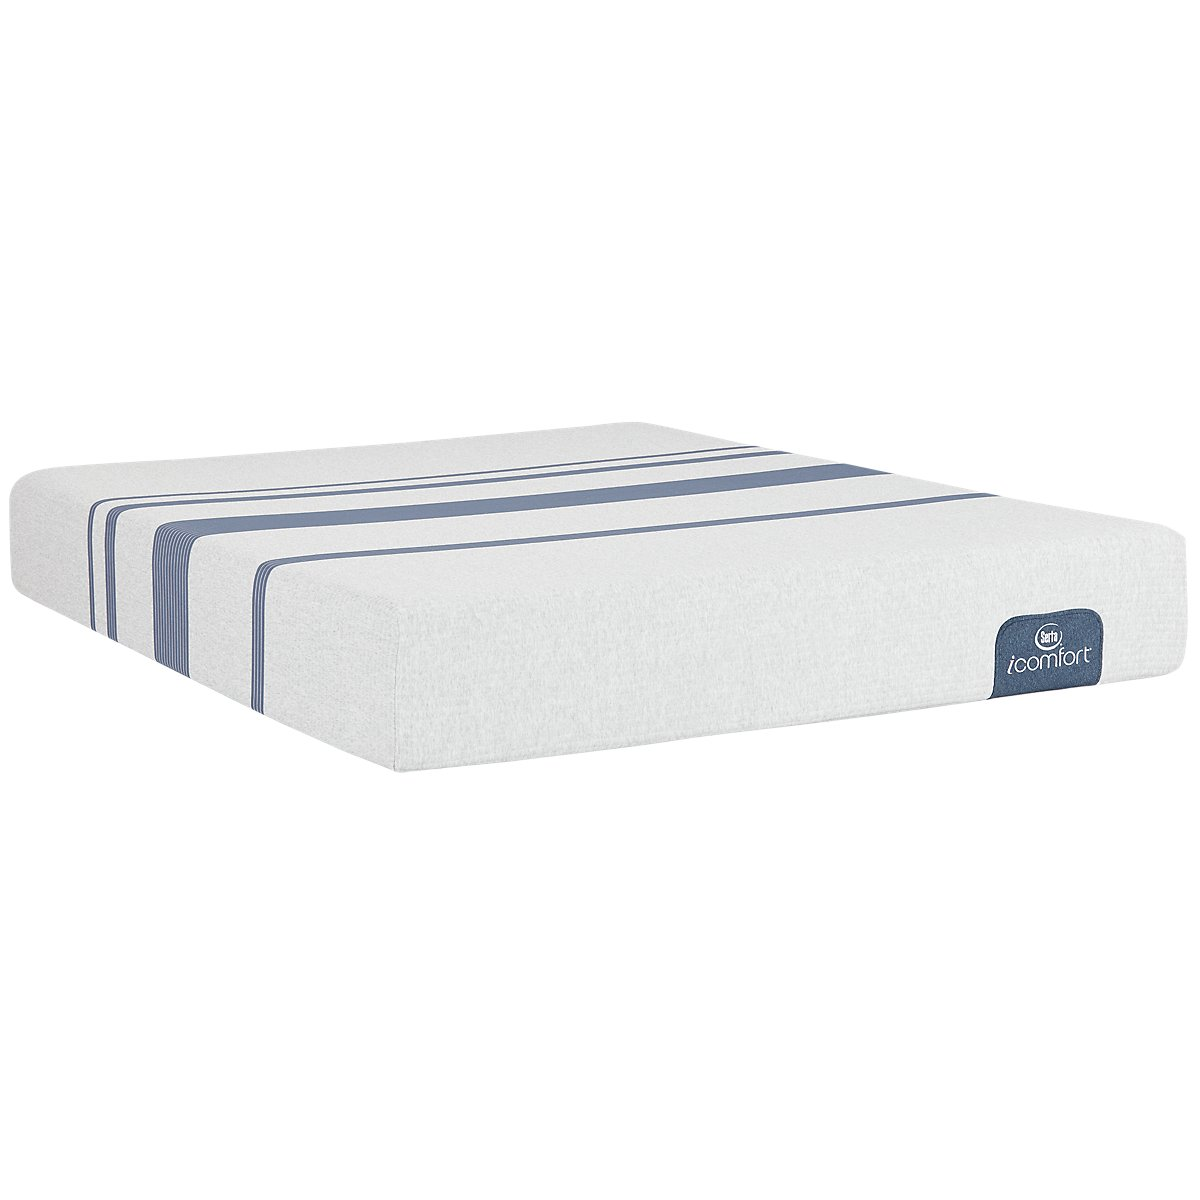 Serta iComfort Blue 100 Firm Mattress